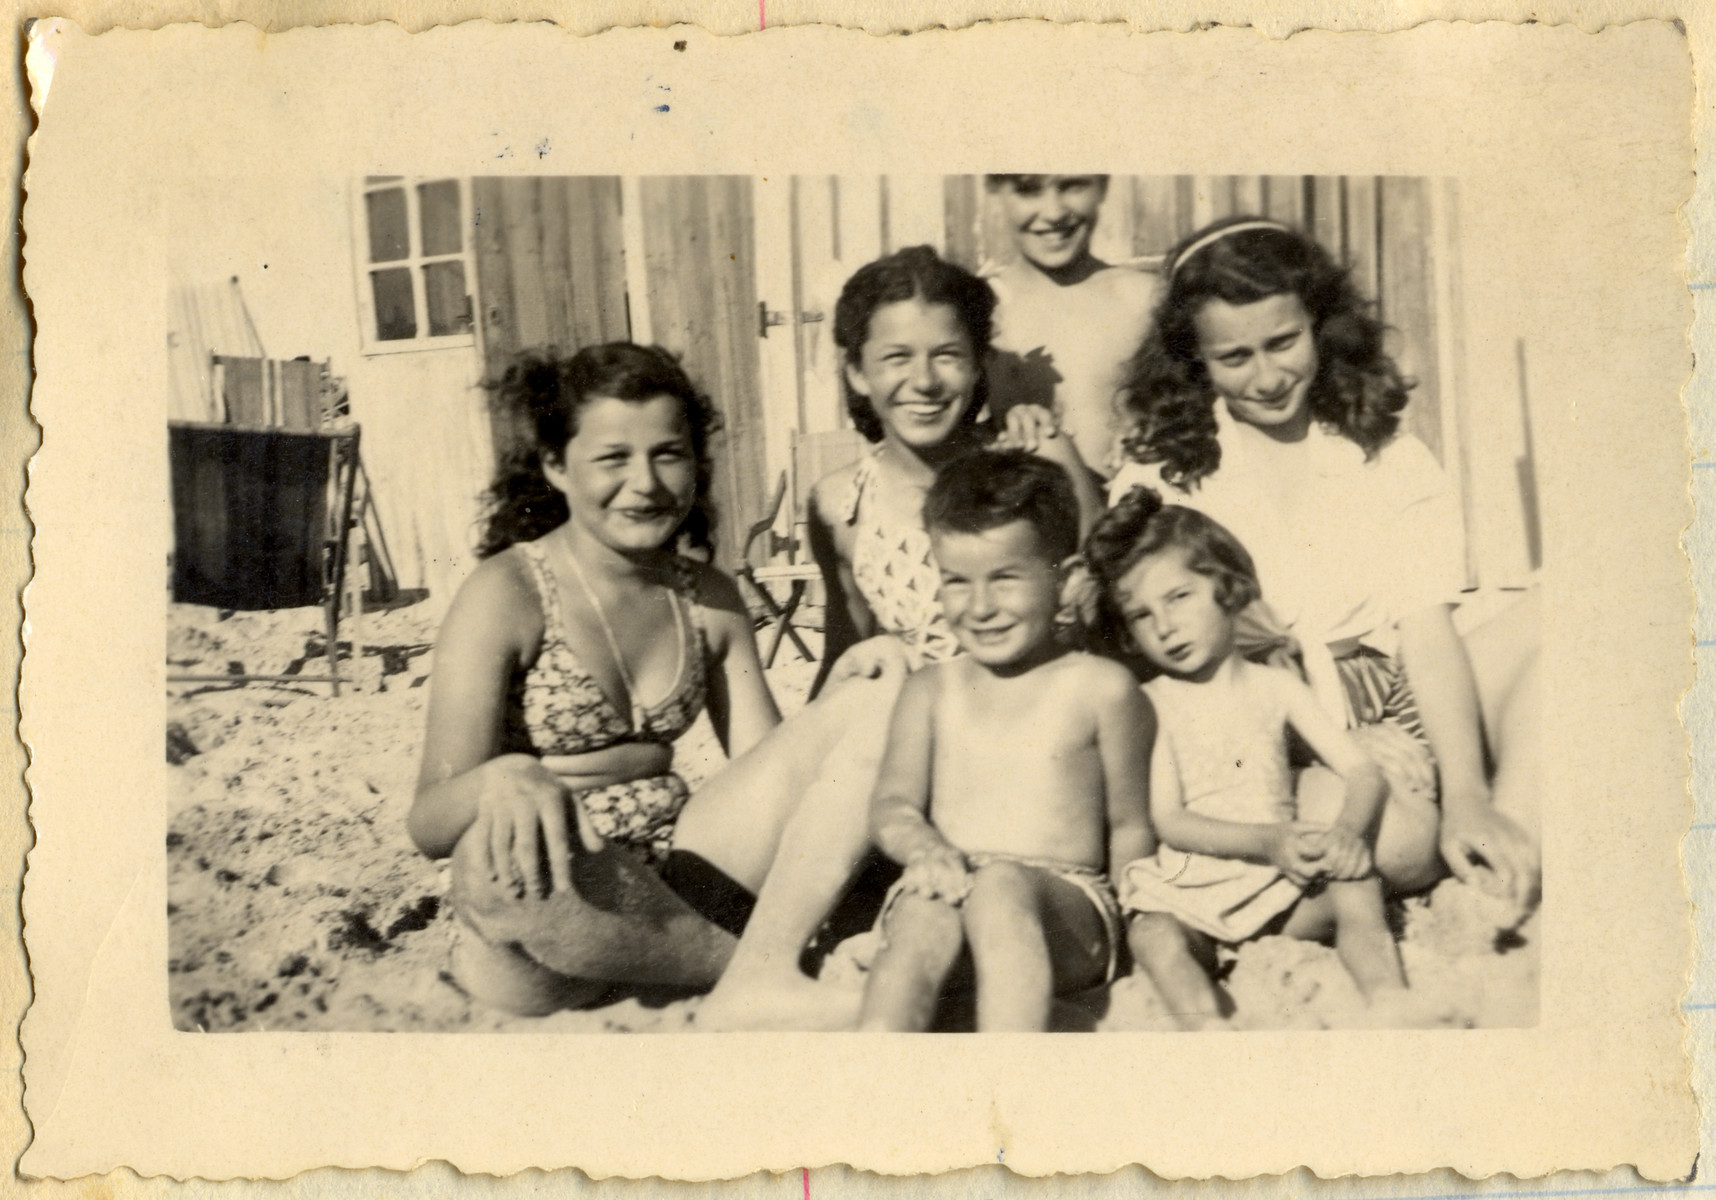 Group portrait of French Jews relaxing on the beach after the war in Le Touquet.  Among those pictured are Jacqueline and Manuela Mendels.